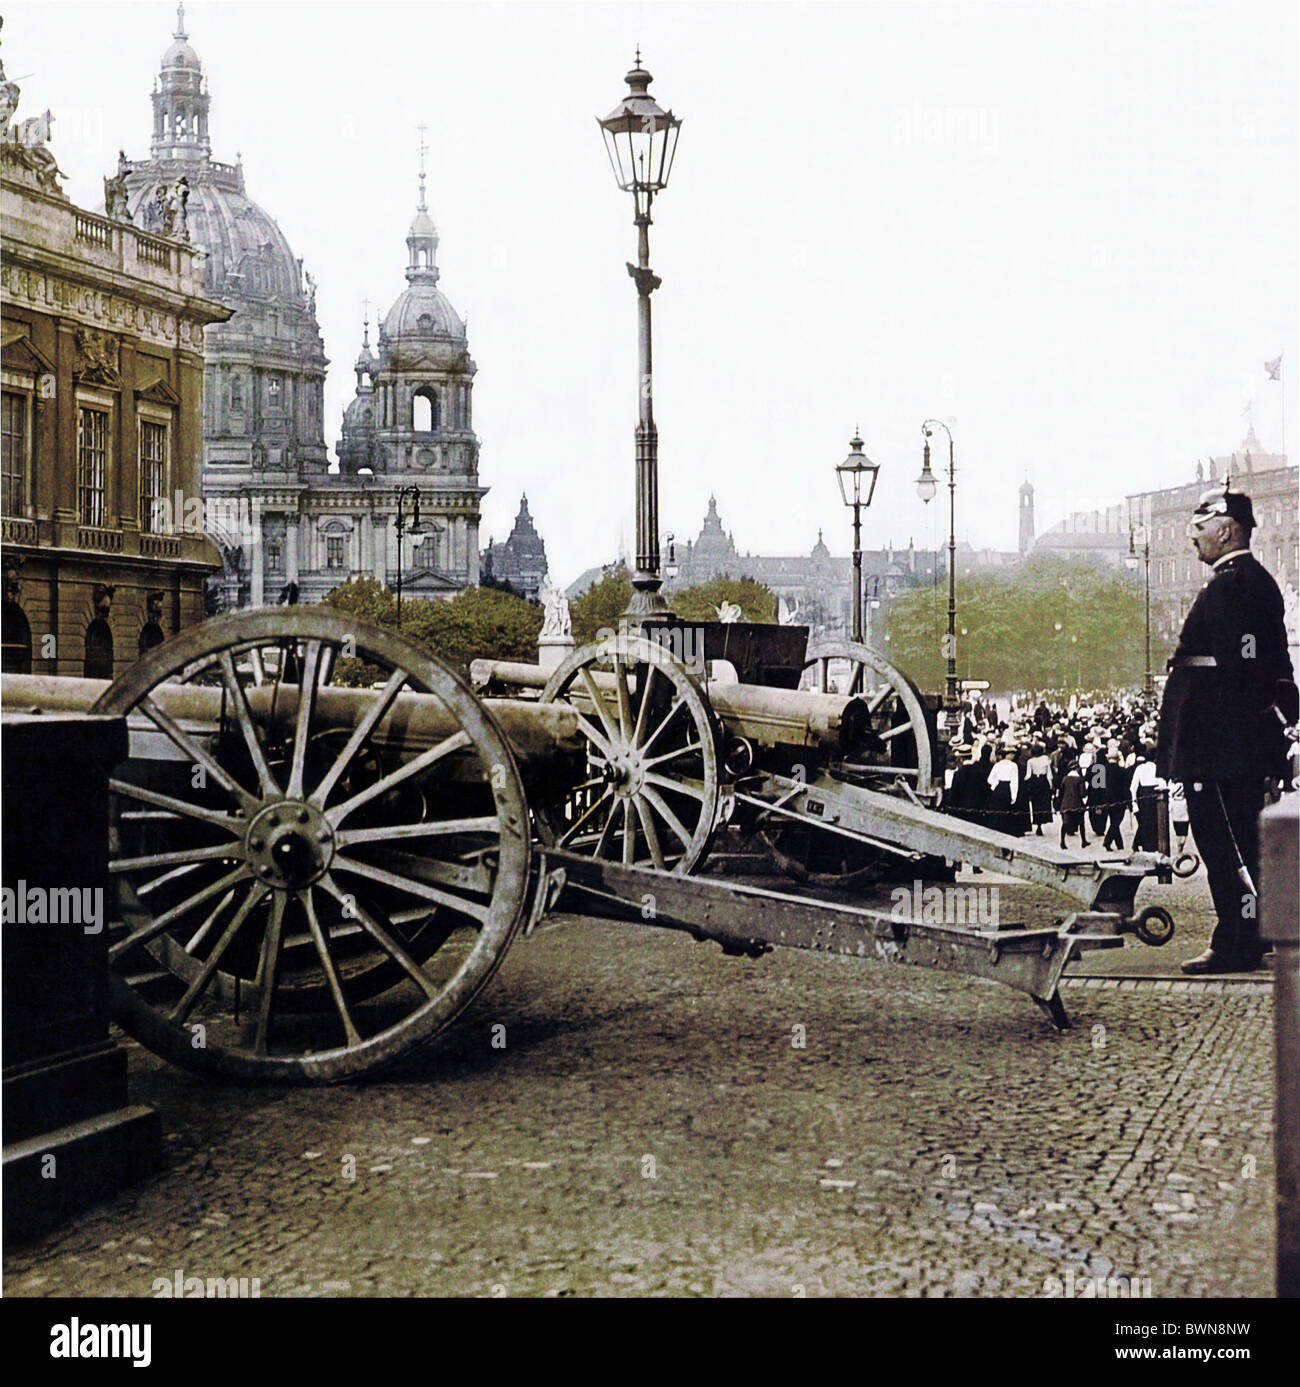 1914 capture weapons Berlin First World War Kronprinzenpalais September 2 history historical historic parade - Stock Image